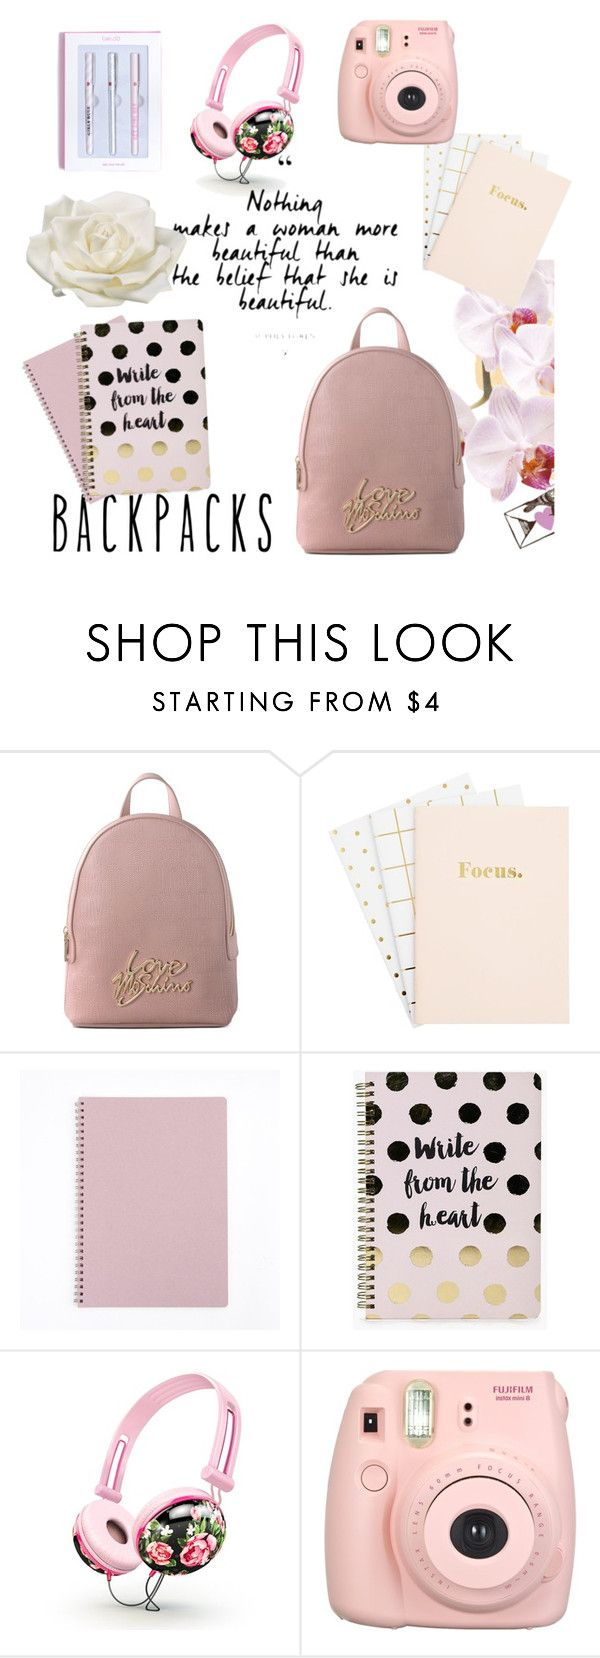 """""""What is in my bag✌"""" by vusalabagirova ❤ liked on Polyvore featuring Love Moschino, Boohoo, Fujifilm, Allstate Floral, backpacks, contestentry and PVStyleInsiderContest"""